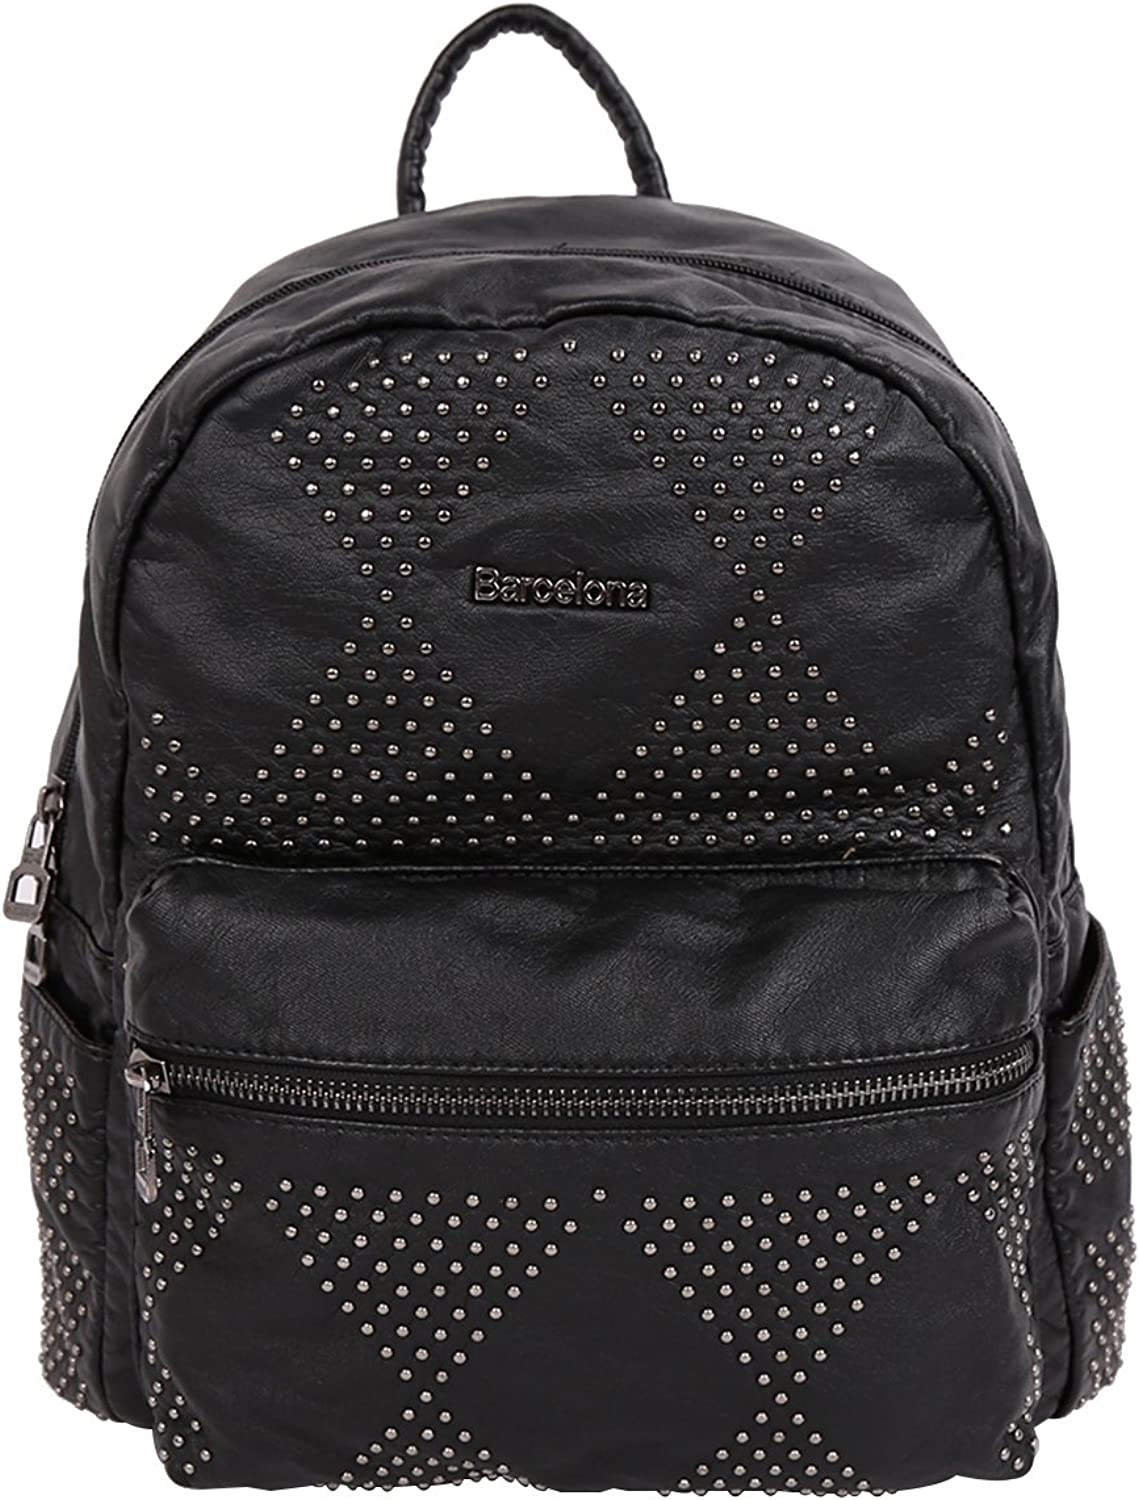 21K Middle Size Backpack PU Leather Multiple Layers Backpack XS160251